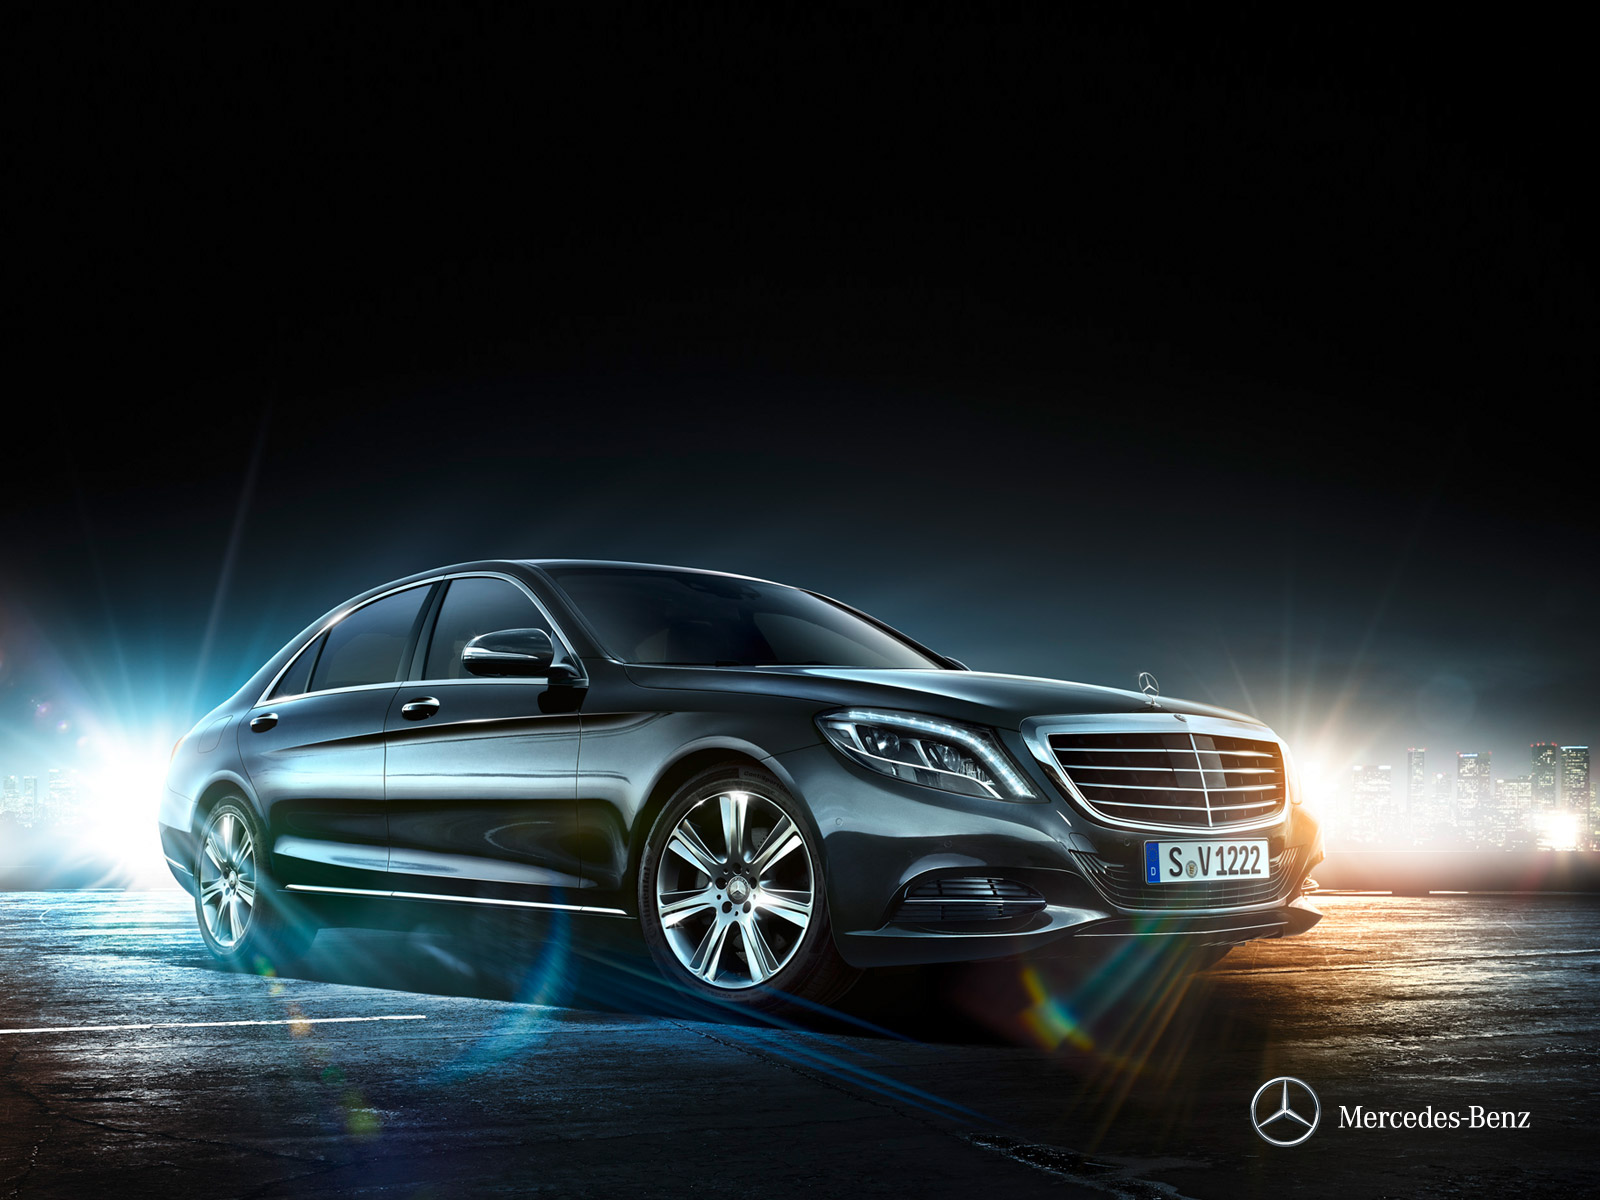 Mercedes Benz S Class Wallpapers Full HD Pictures 1600x1200